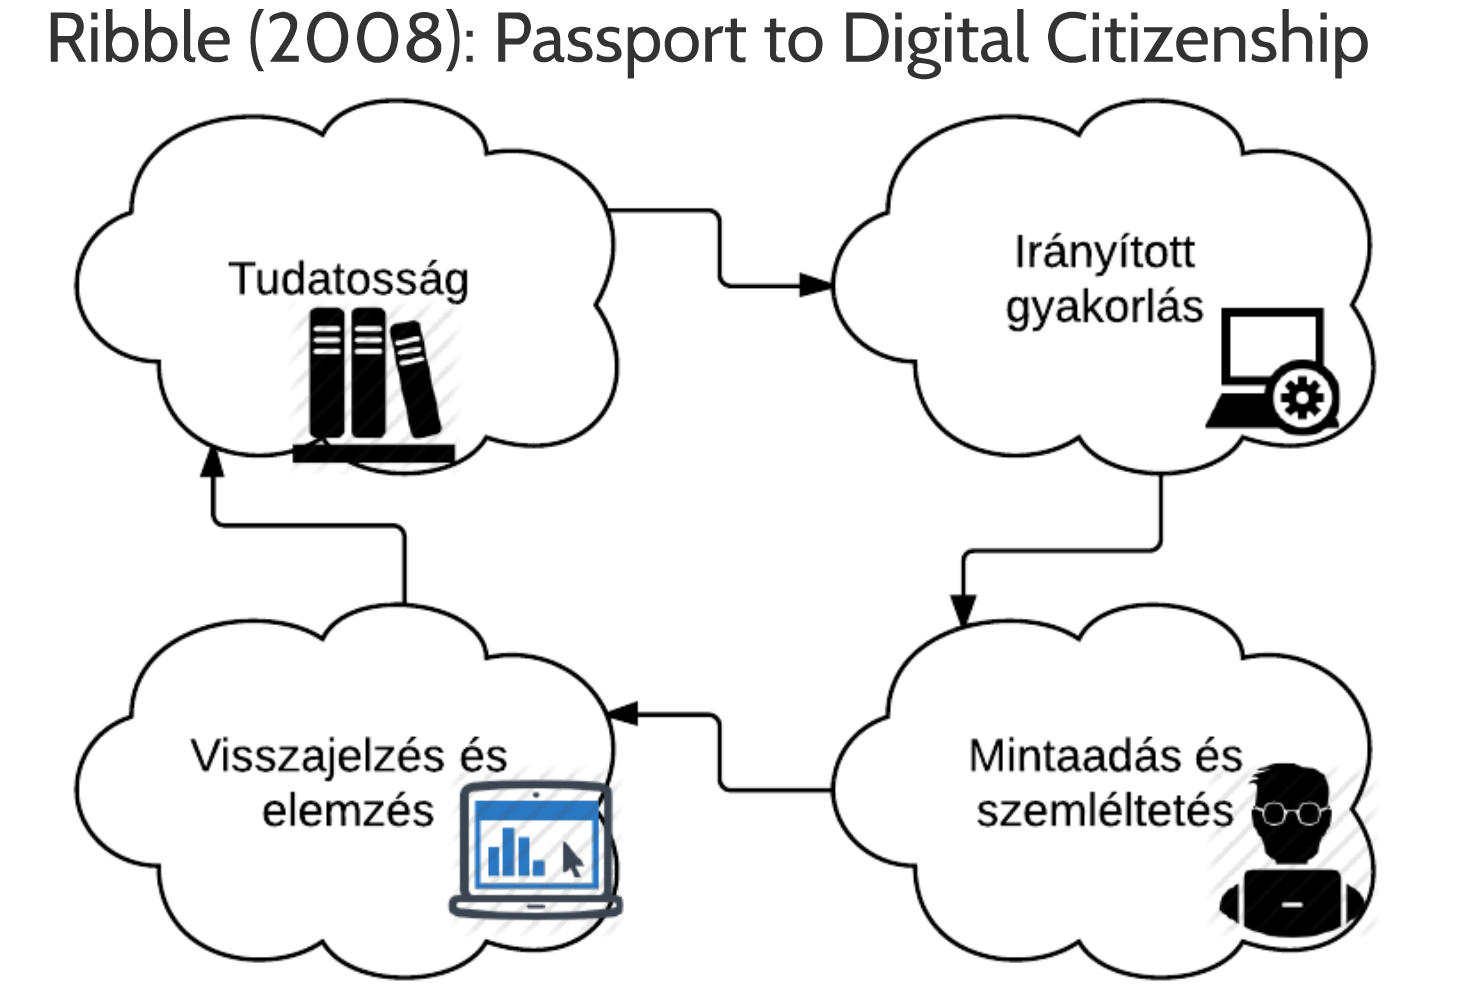 ribble_passport_2008.png